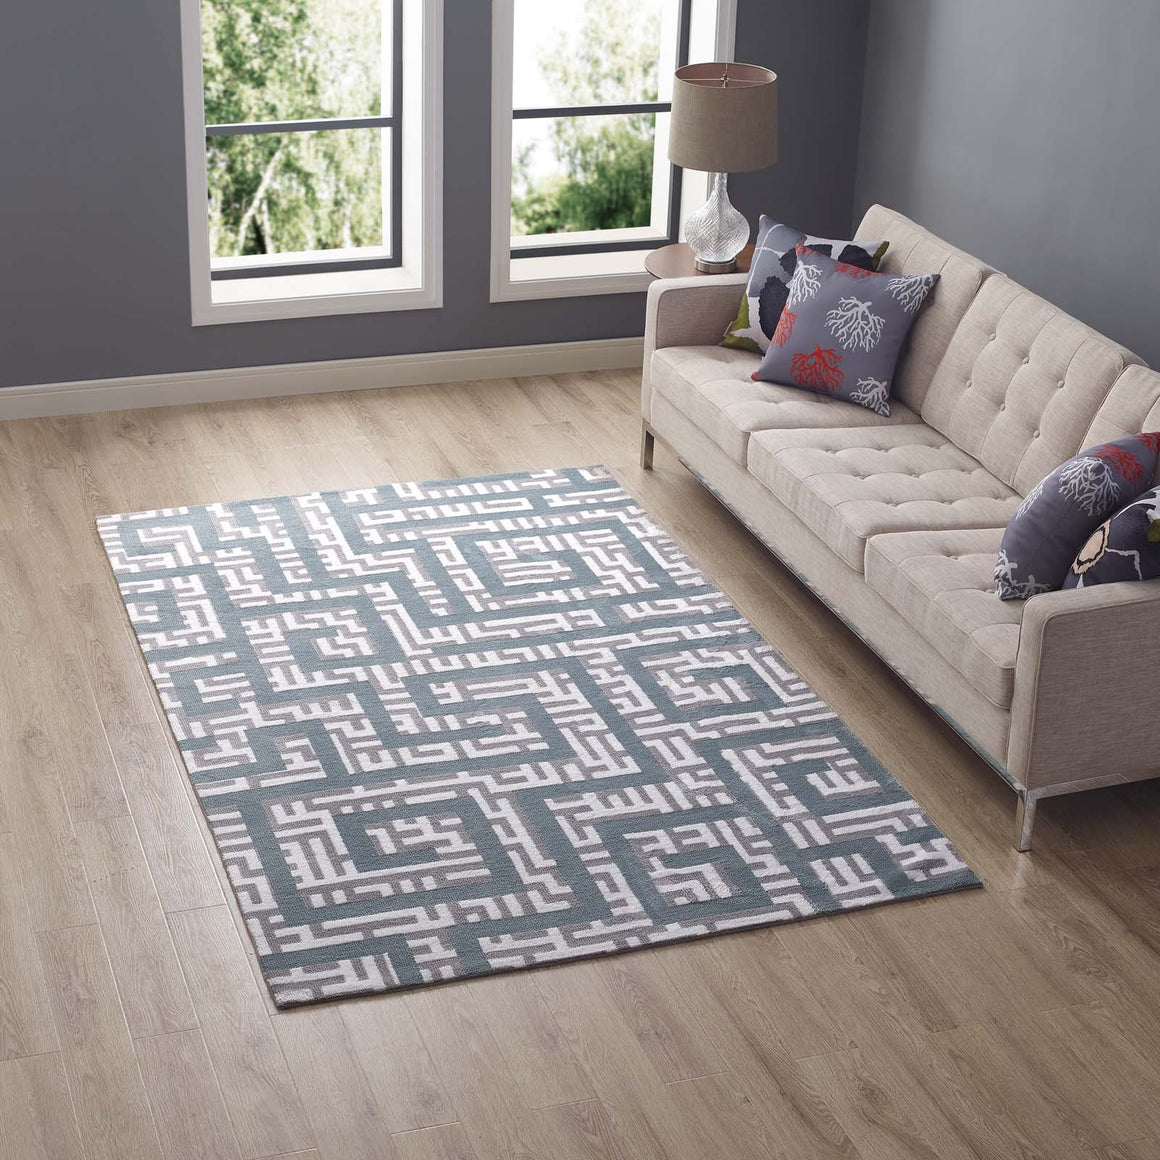 Nahia Geometric Maze 5x8 Area Rug Ivory, Light Gray and Sky Blue